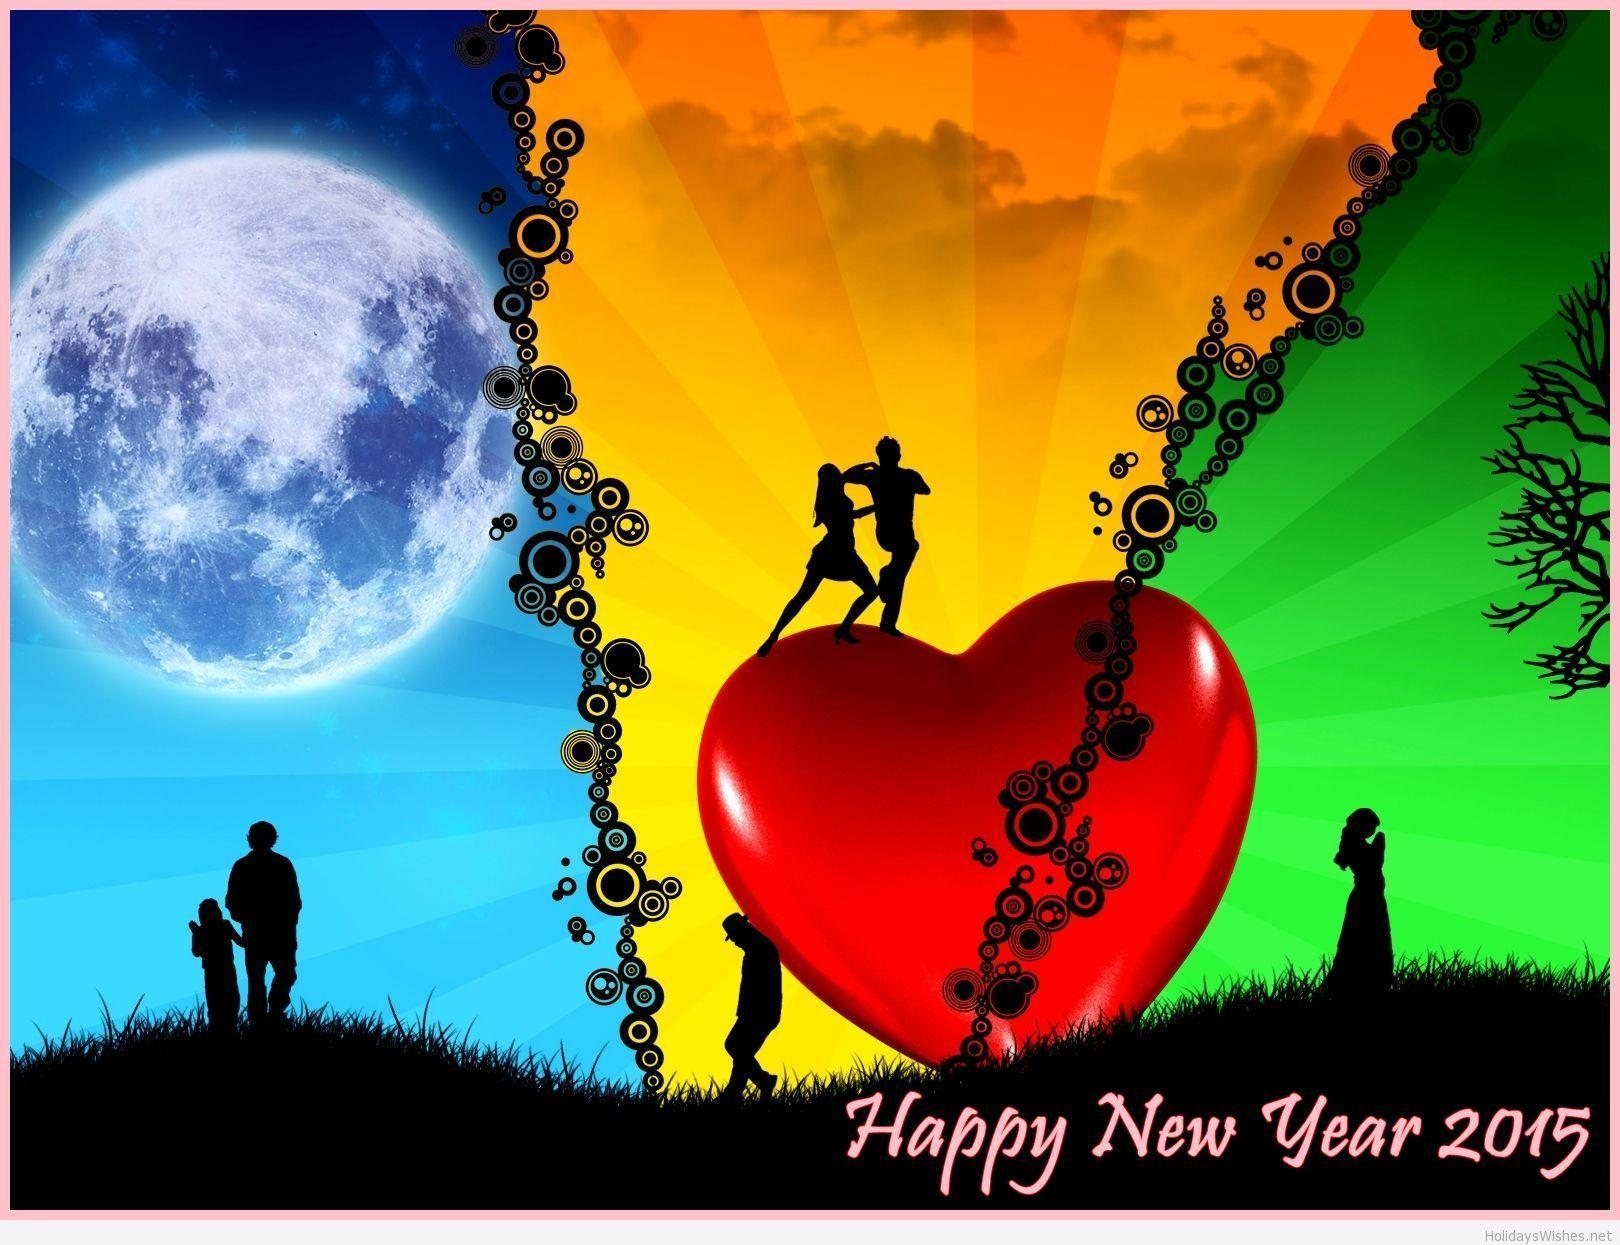 New Love Image Wallpapers 2015 - Wallpaper cave